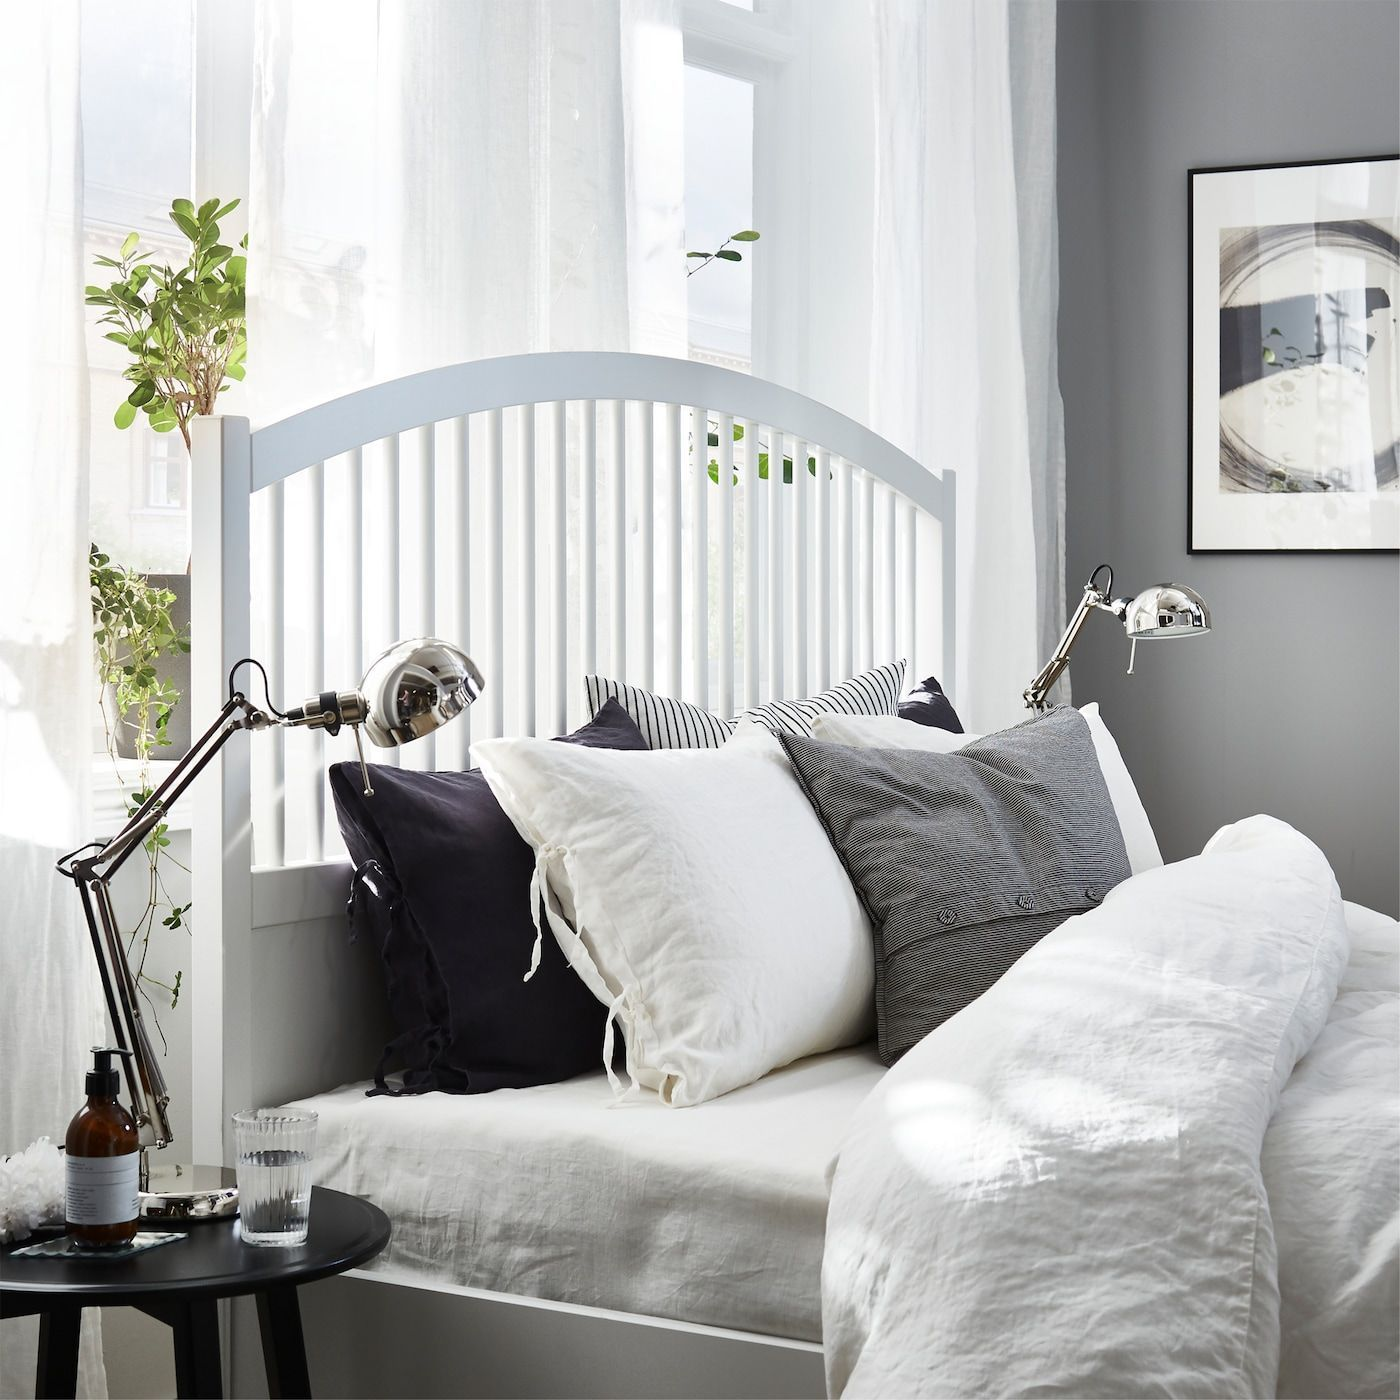 Photo of home accessories ikea #home #accessories #homeaccessories